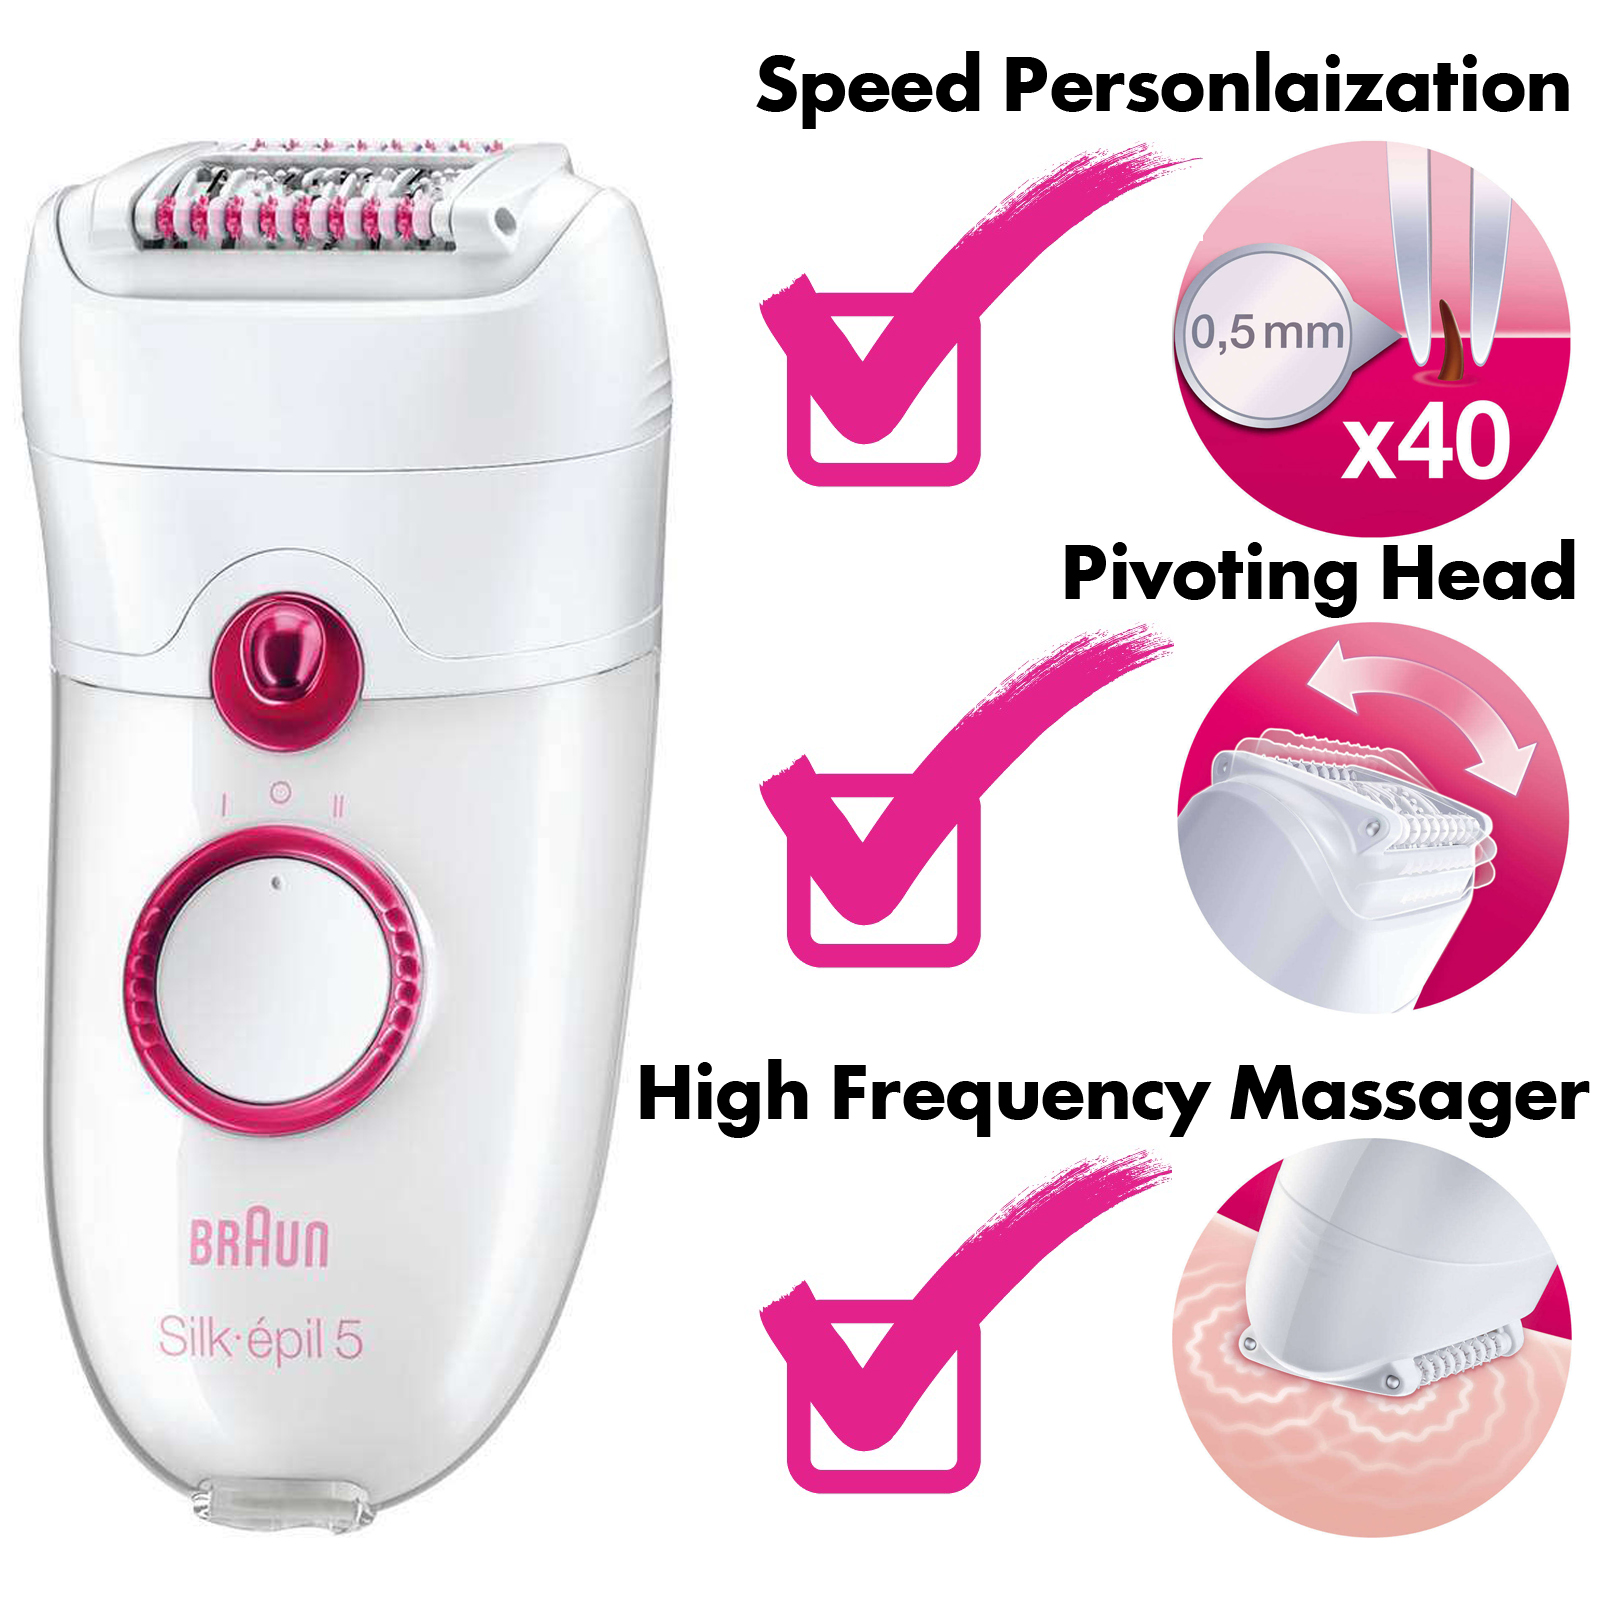 braun silk epil 5 epilator review braun 5280. Black Bedroom Furniture Sets. Home Design Ideas